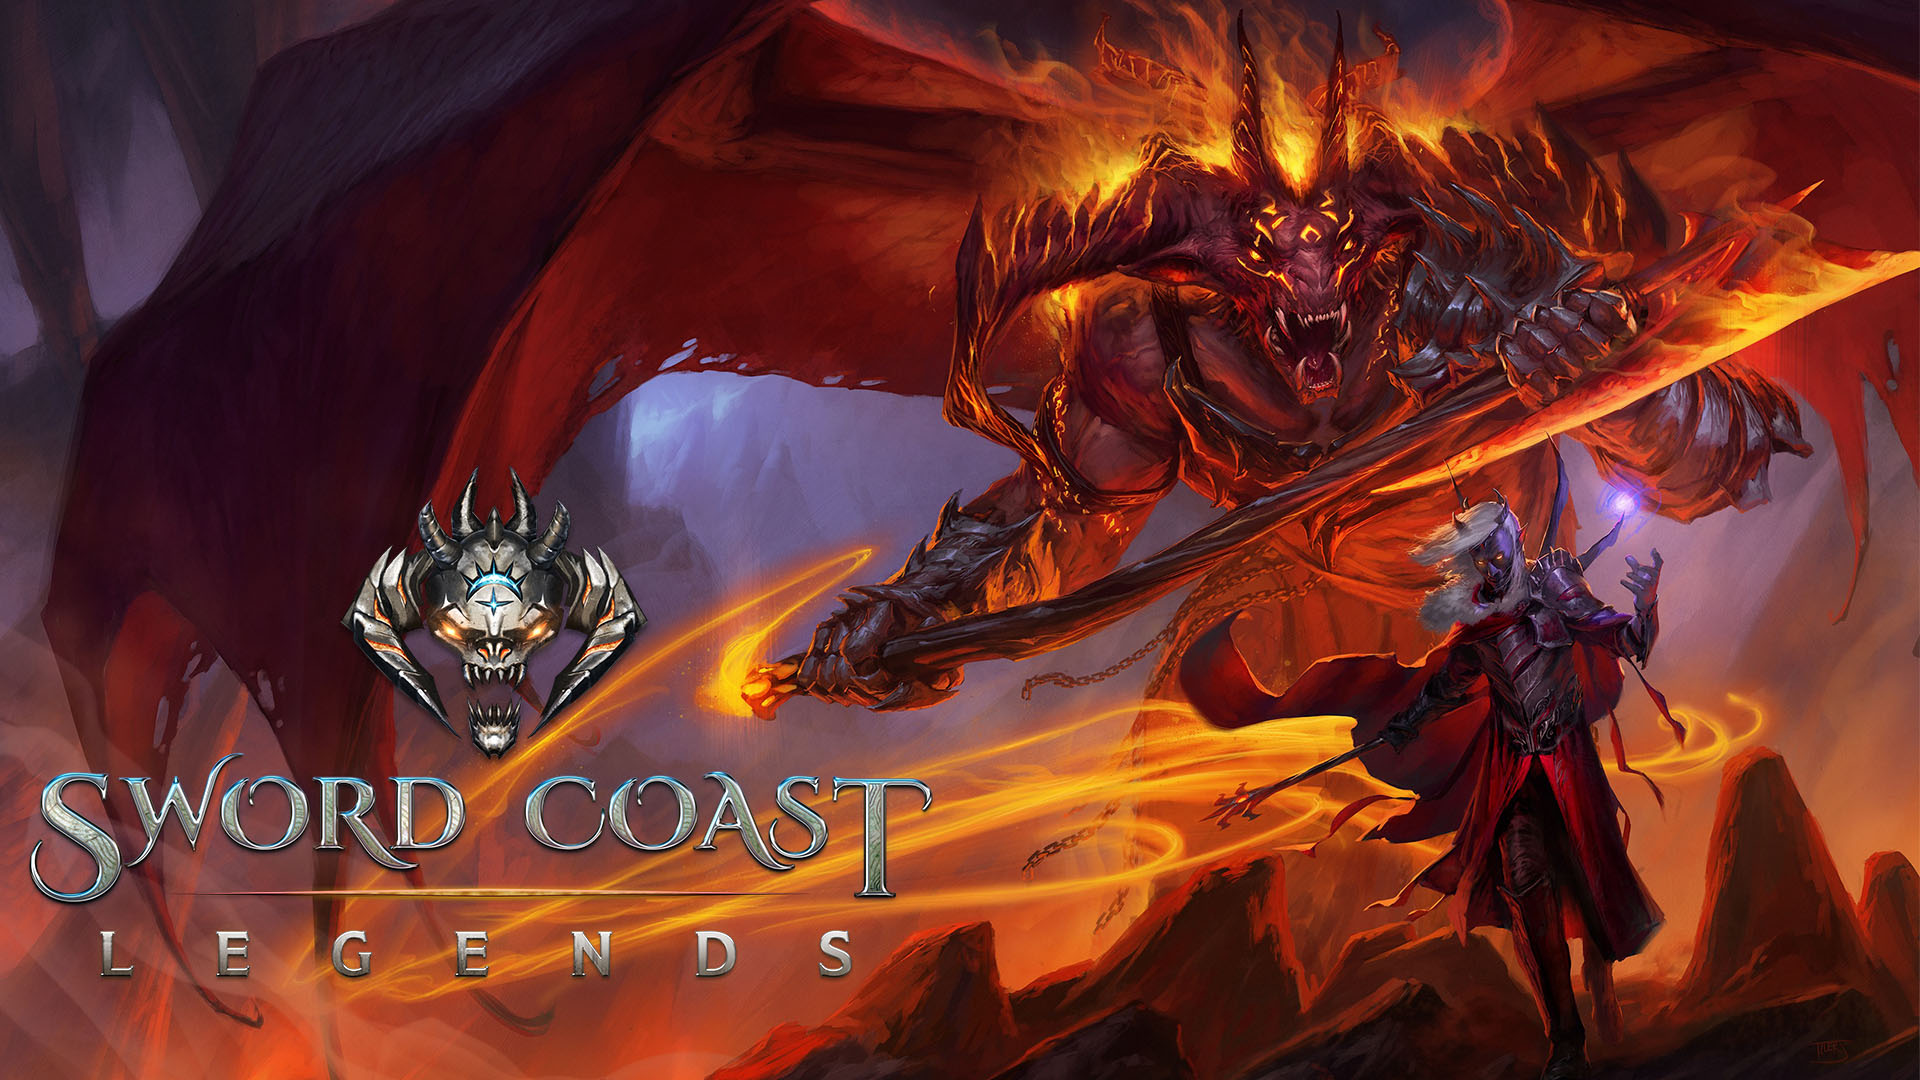 Il logo di Sword Coast Legends su un'illustrazione.